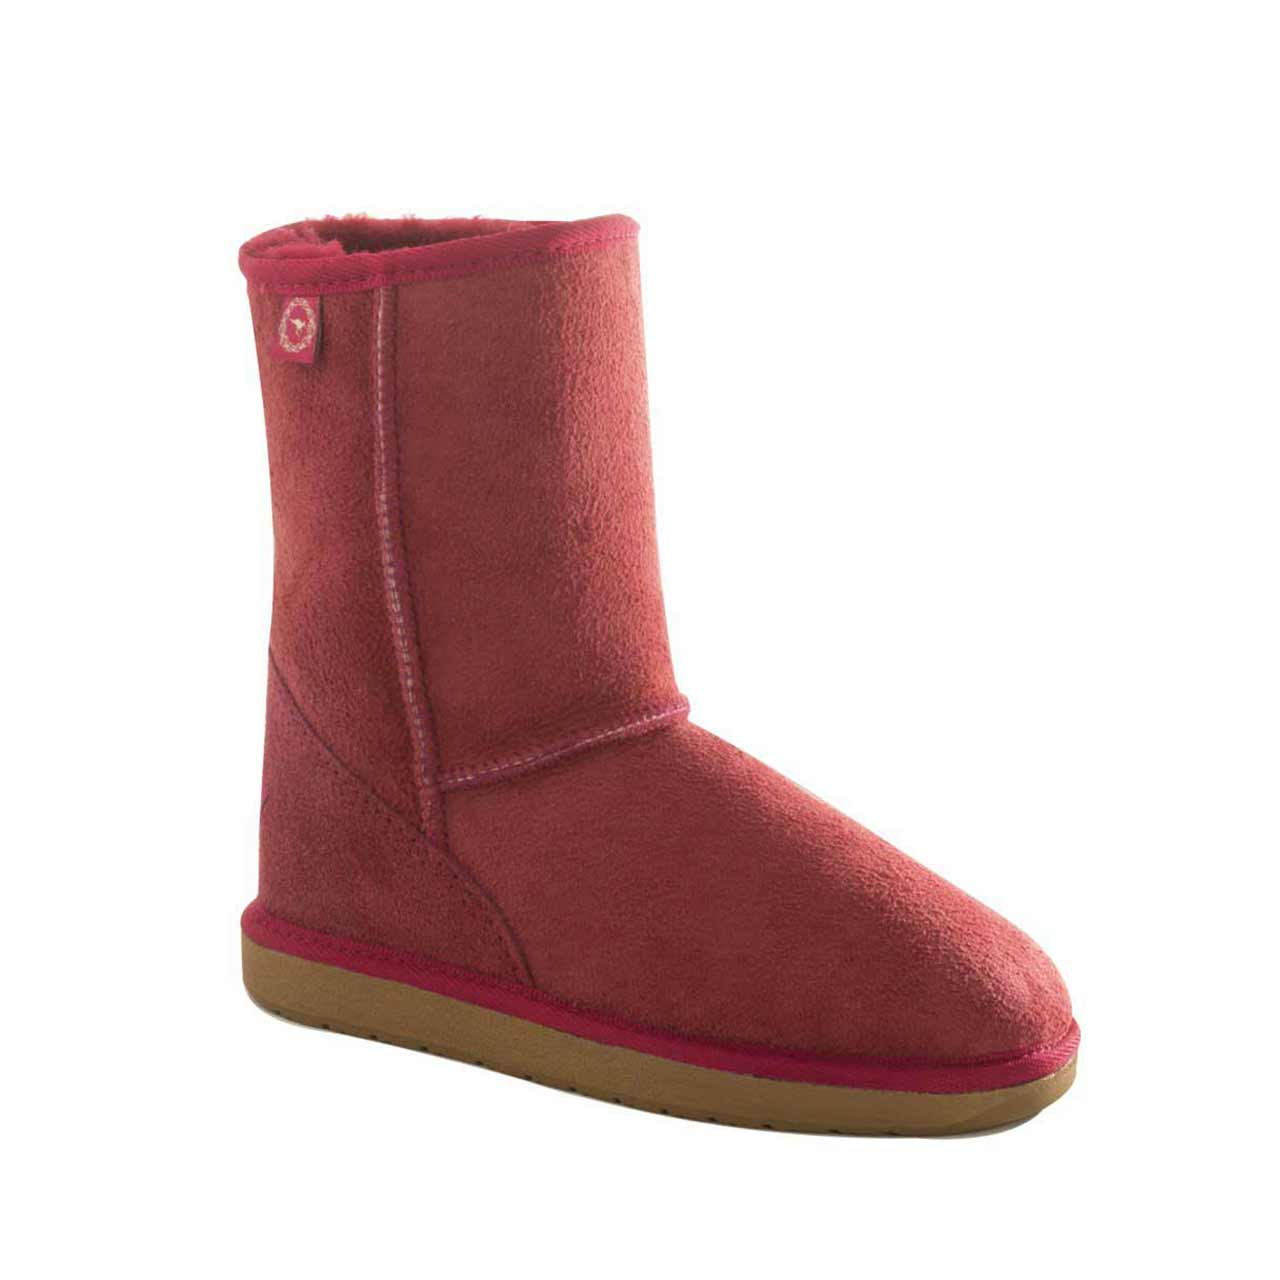 Tidal 3/4 Boots | The One and Only | Ugg Australia®